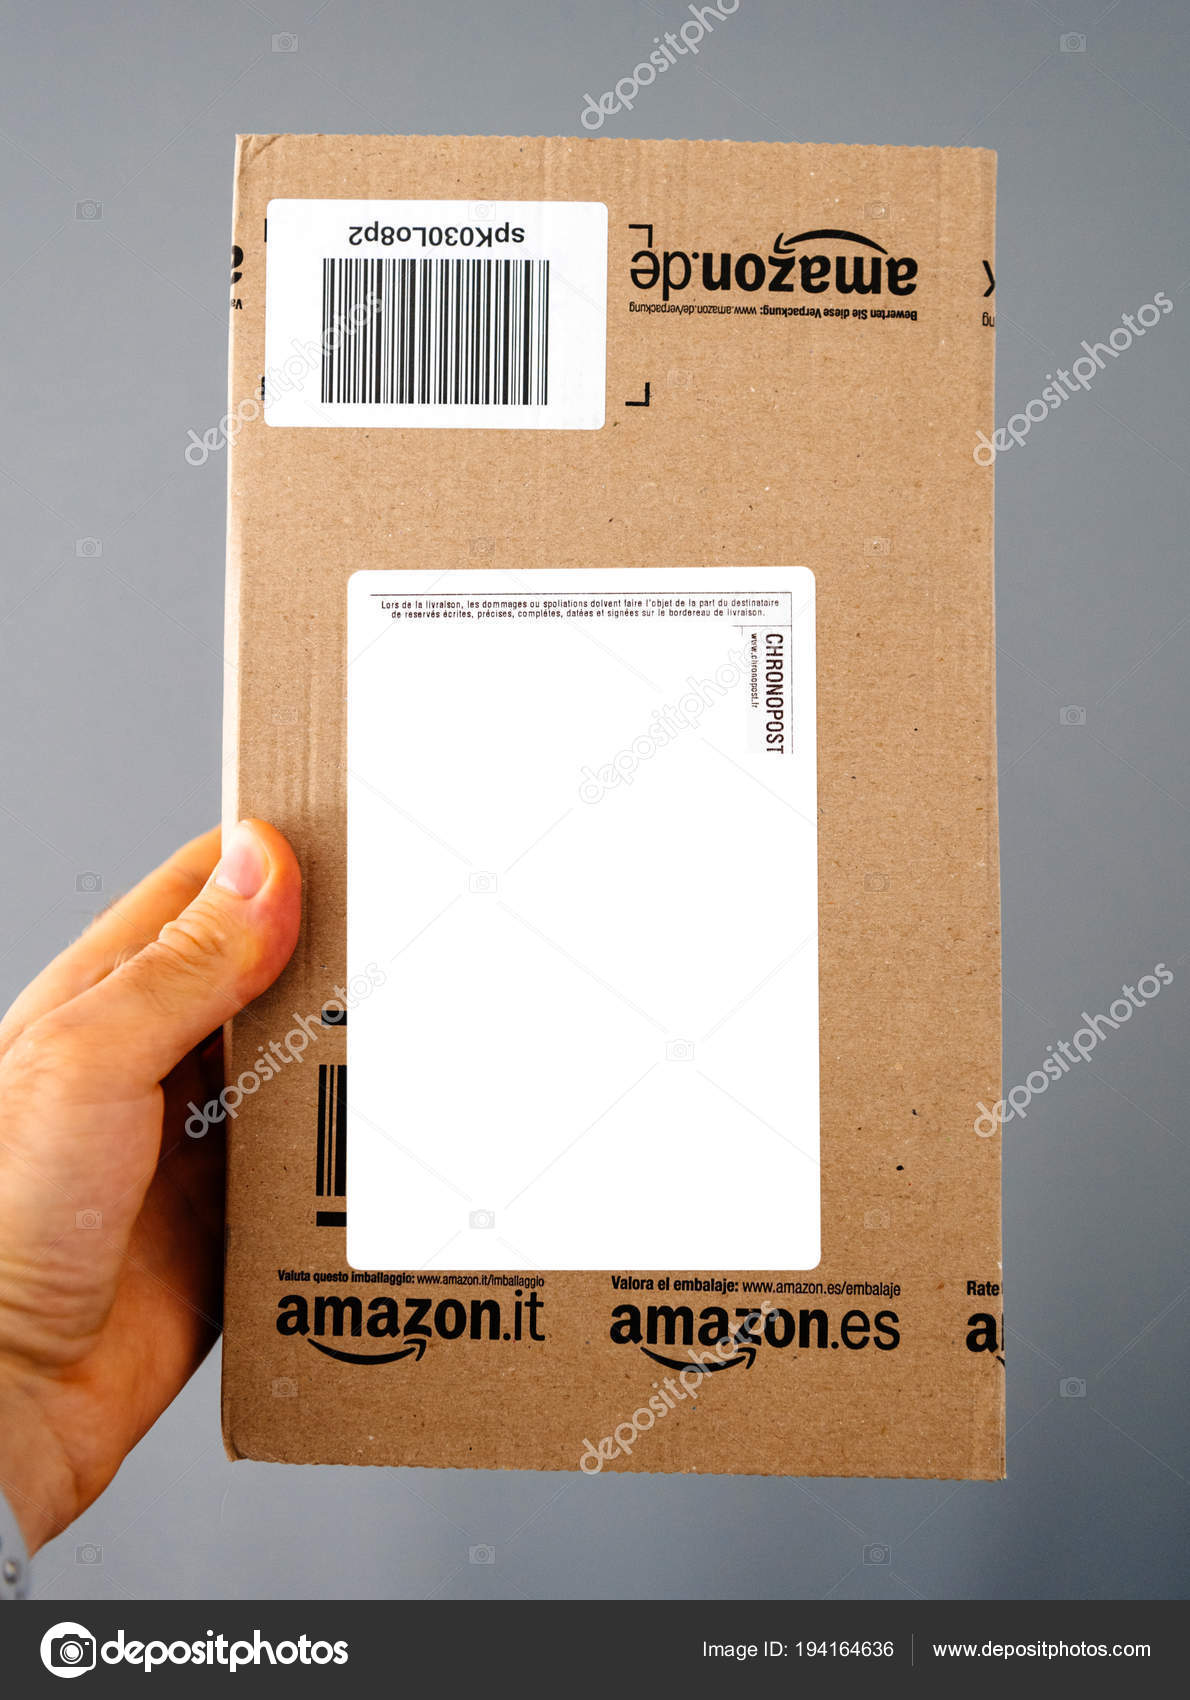 Amazon Usa Livraison France Man Holding Amazon Parcel Box Stock Editorial Photo Ifeelstock